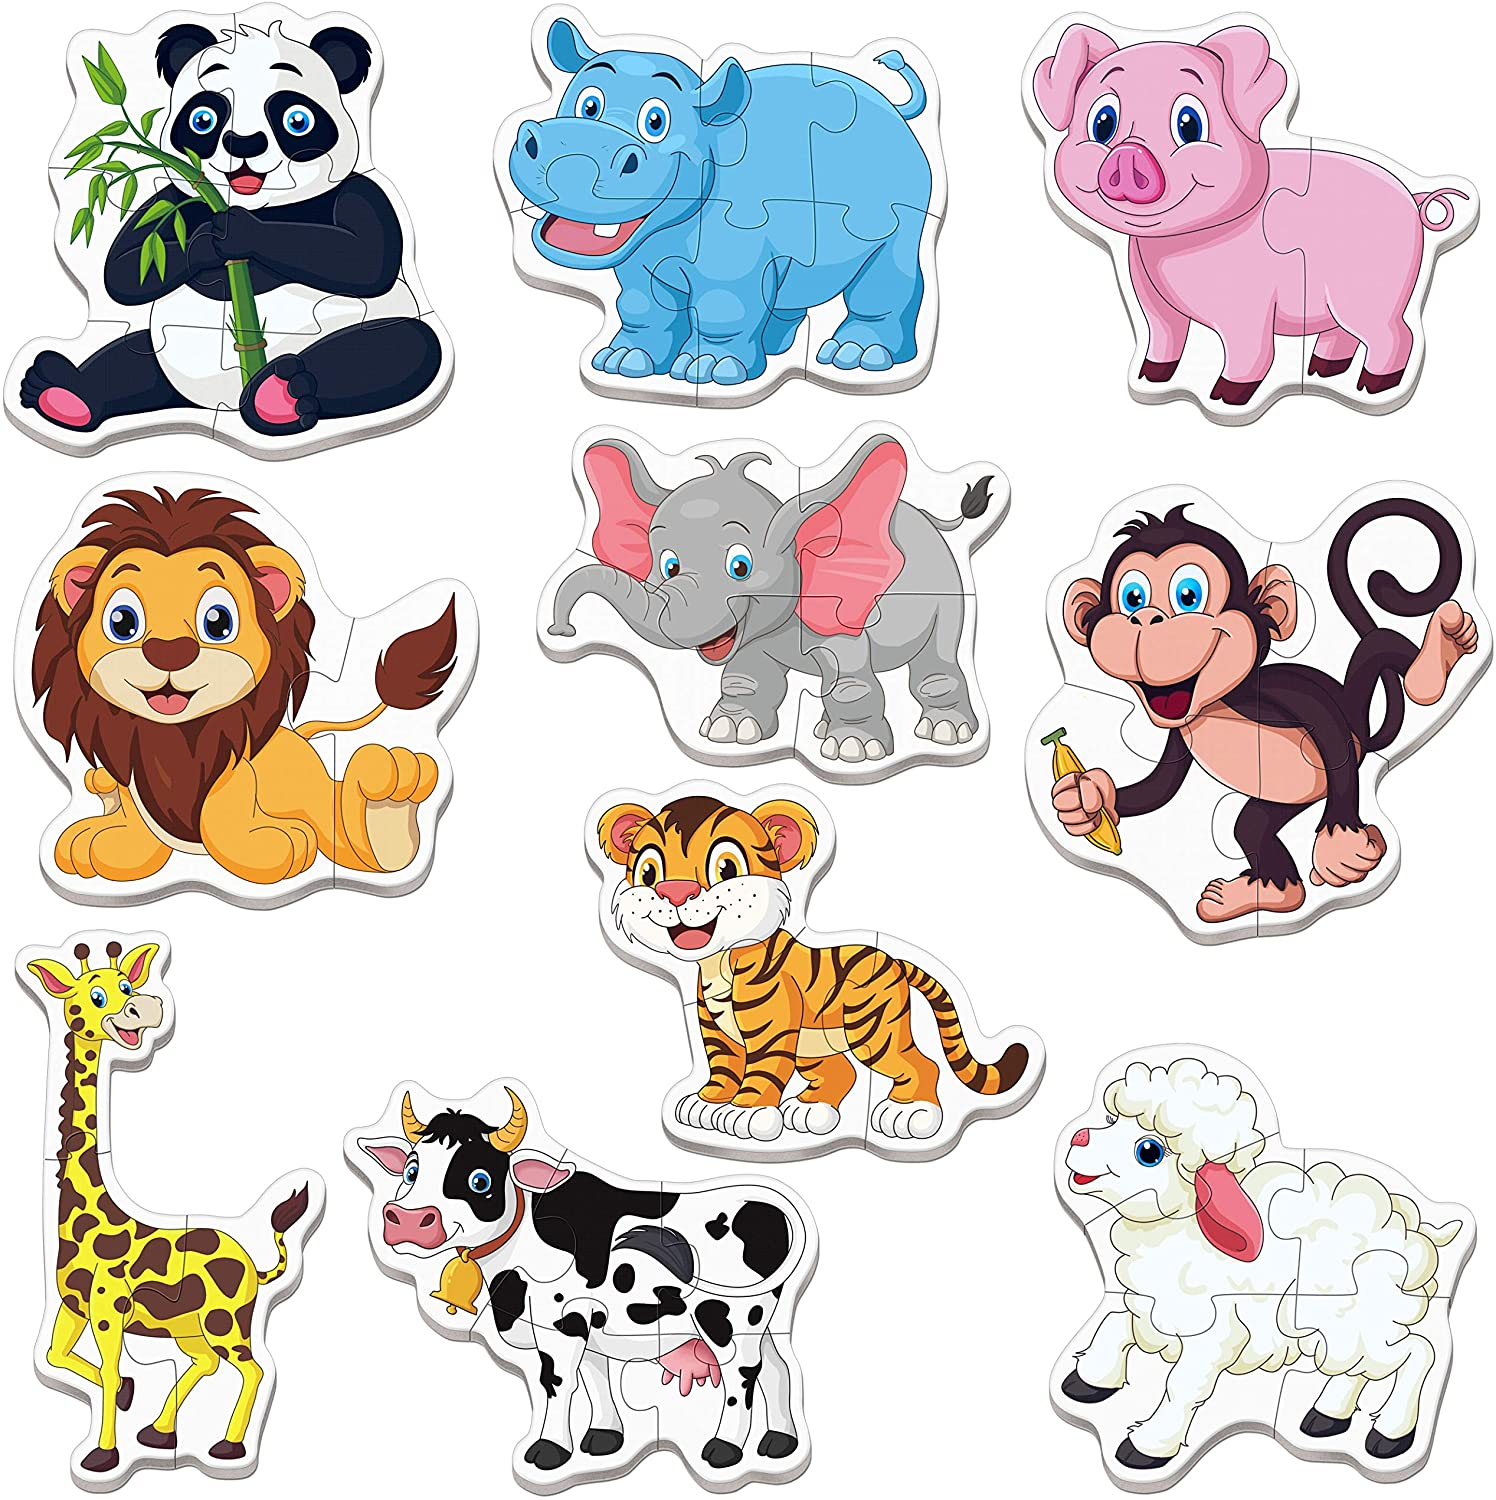 including Panda Tiger 10 Pack Animal Jigsaw Puzzles for 2 Elephant and More,Back Guiding Number for Beginner Puzzles Suitable for Preschool Toddlers Early Learning 40 PCS 3 Years Old Toddlers